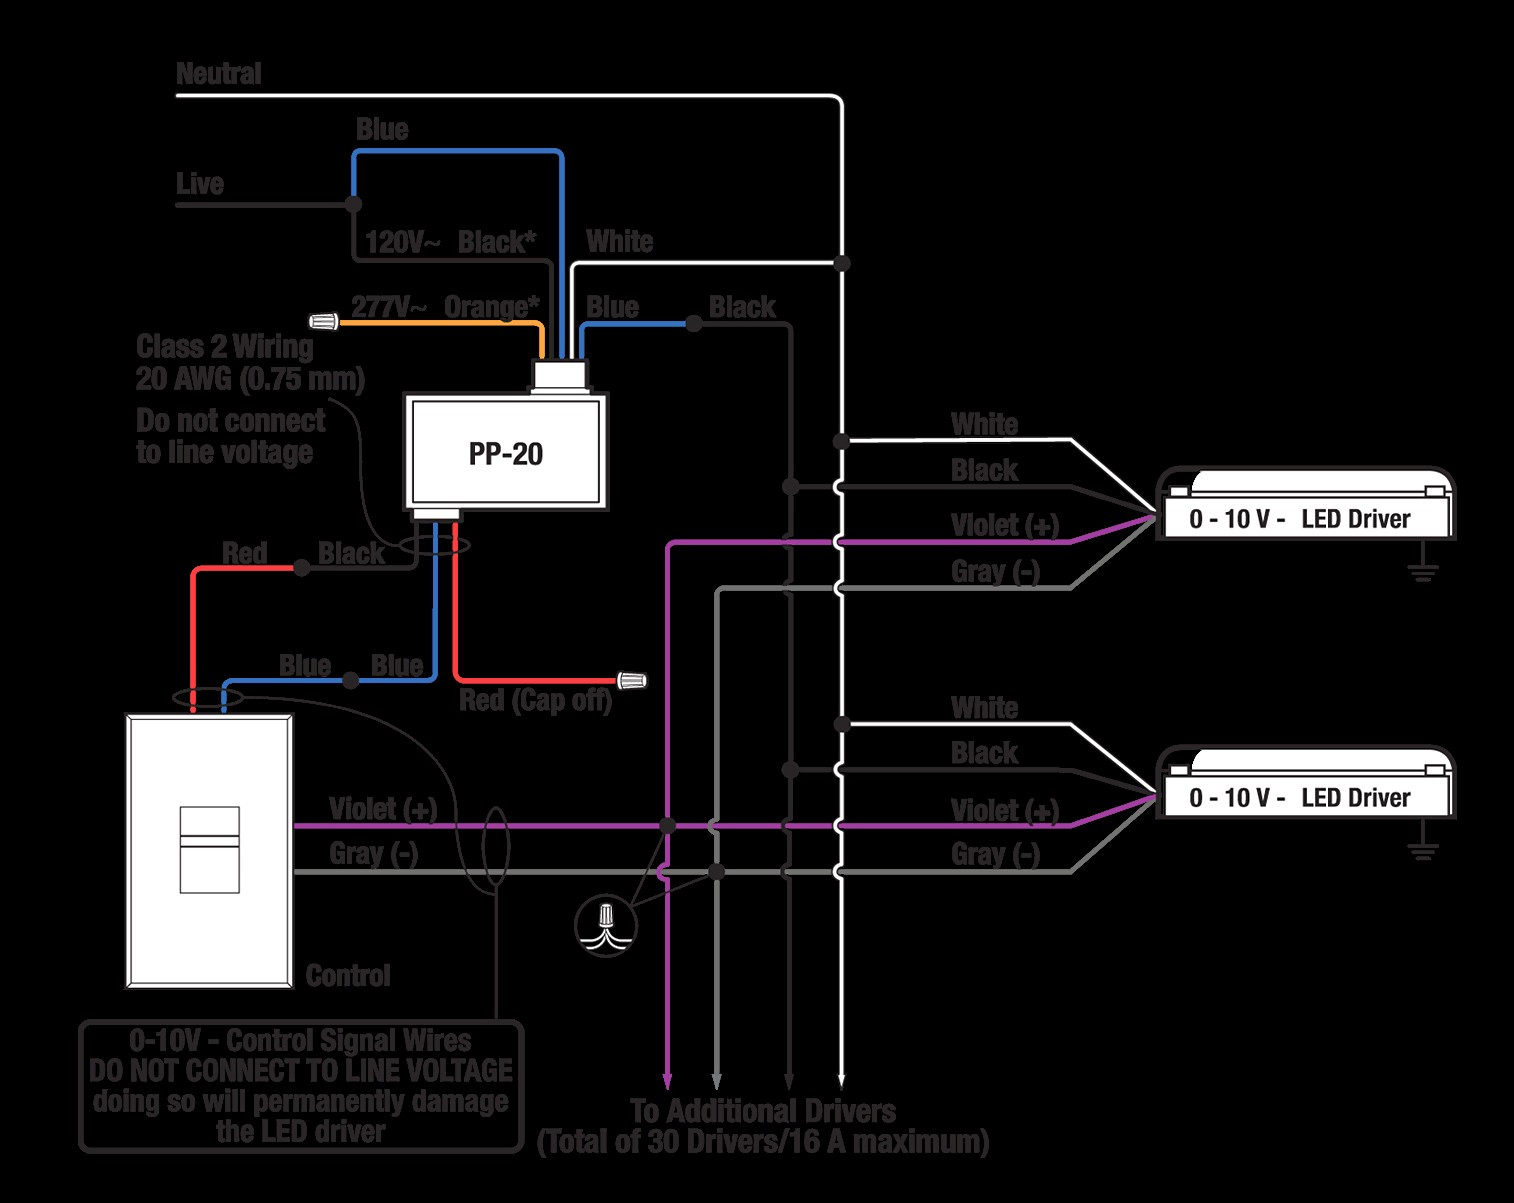 Floor Mounted Dimmer Switch Wiring Diagram New Image Pole Controller Control Panel Diagrams Schematics 0 10v